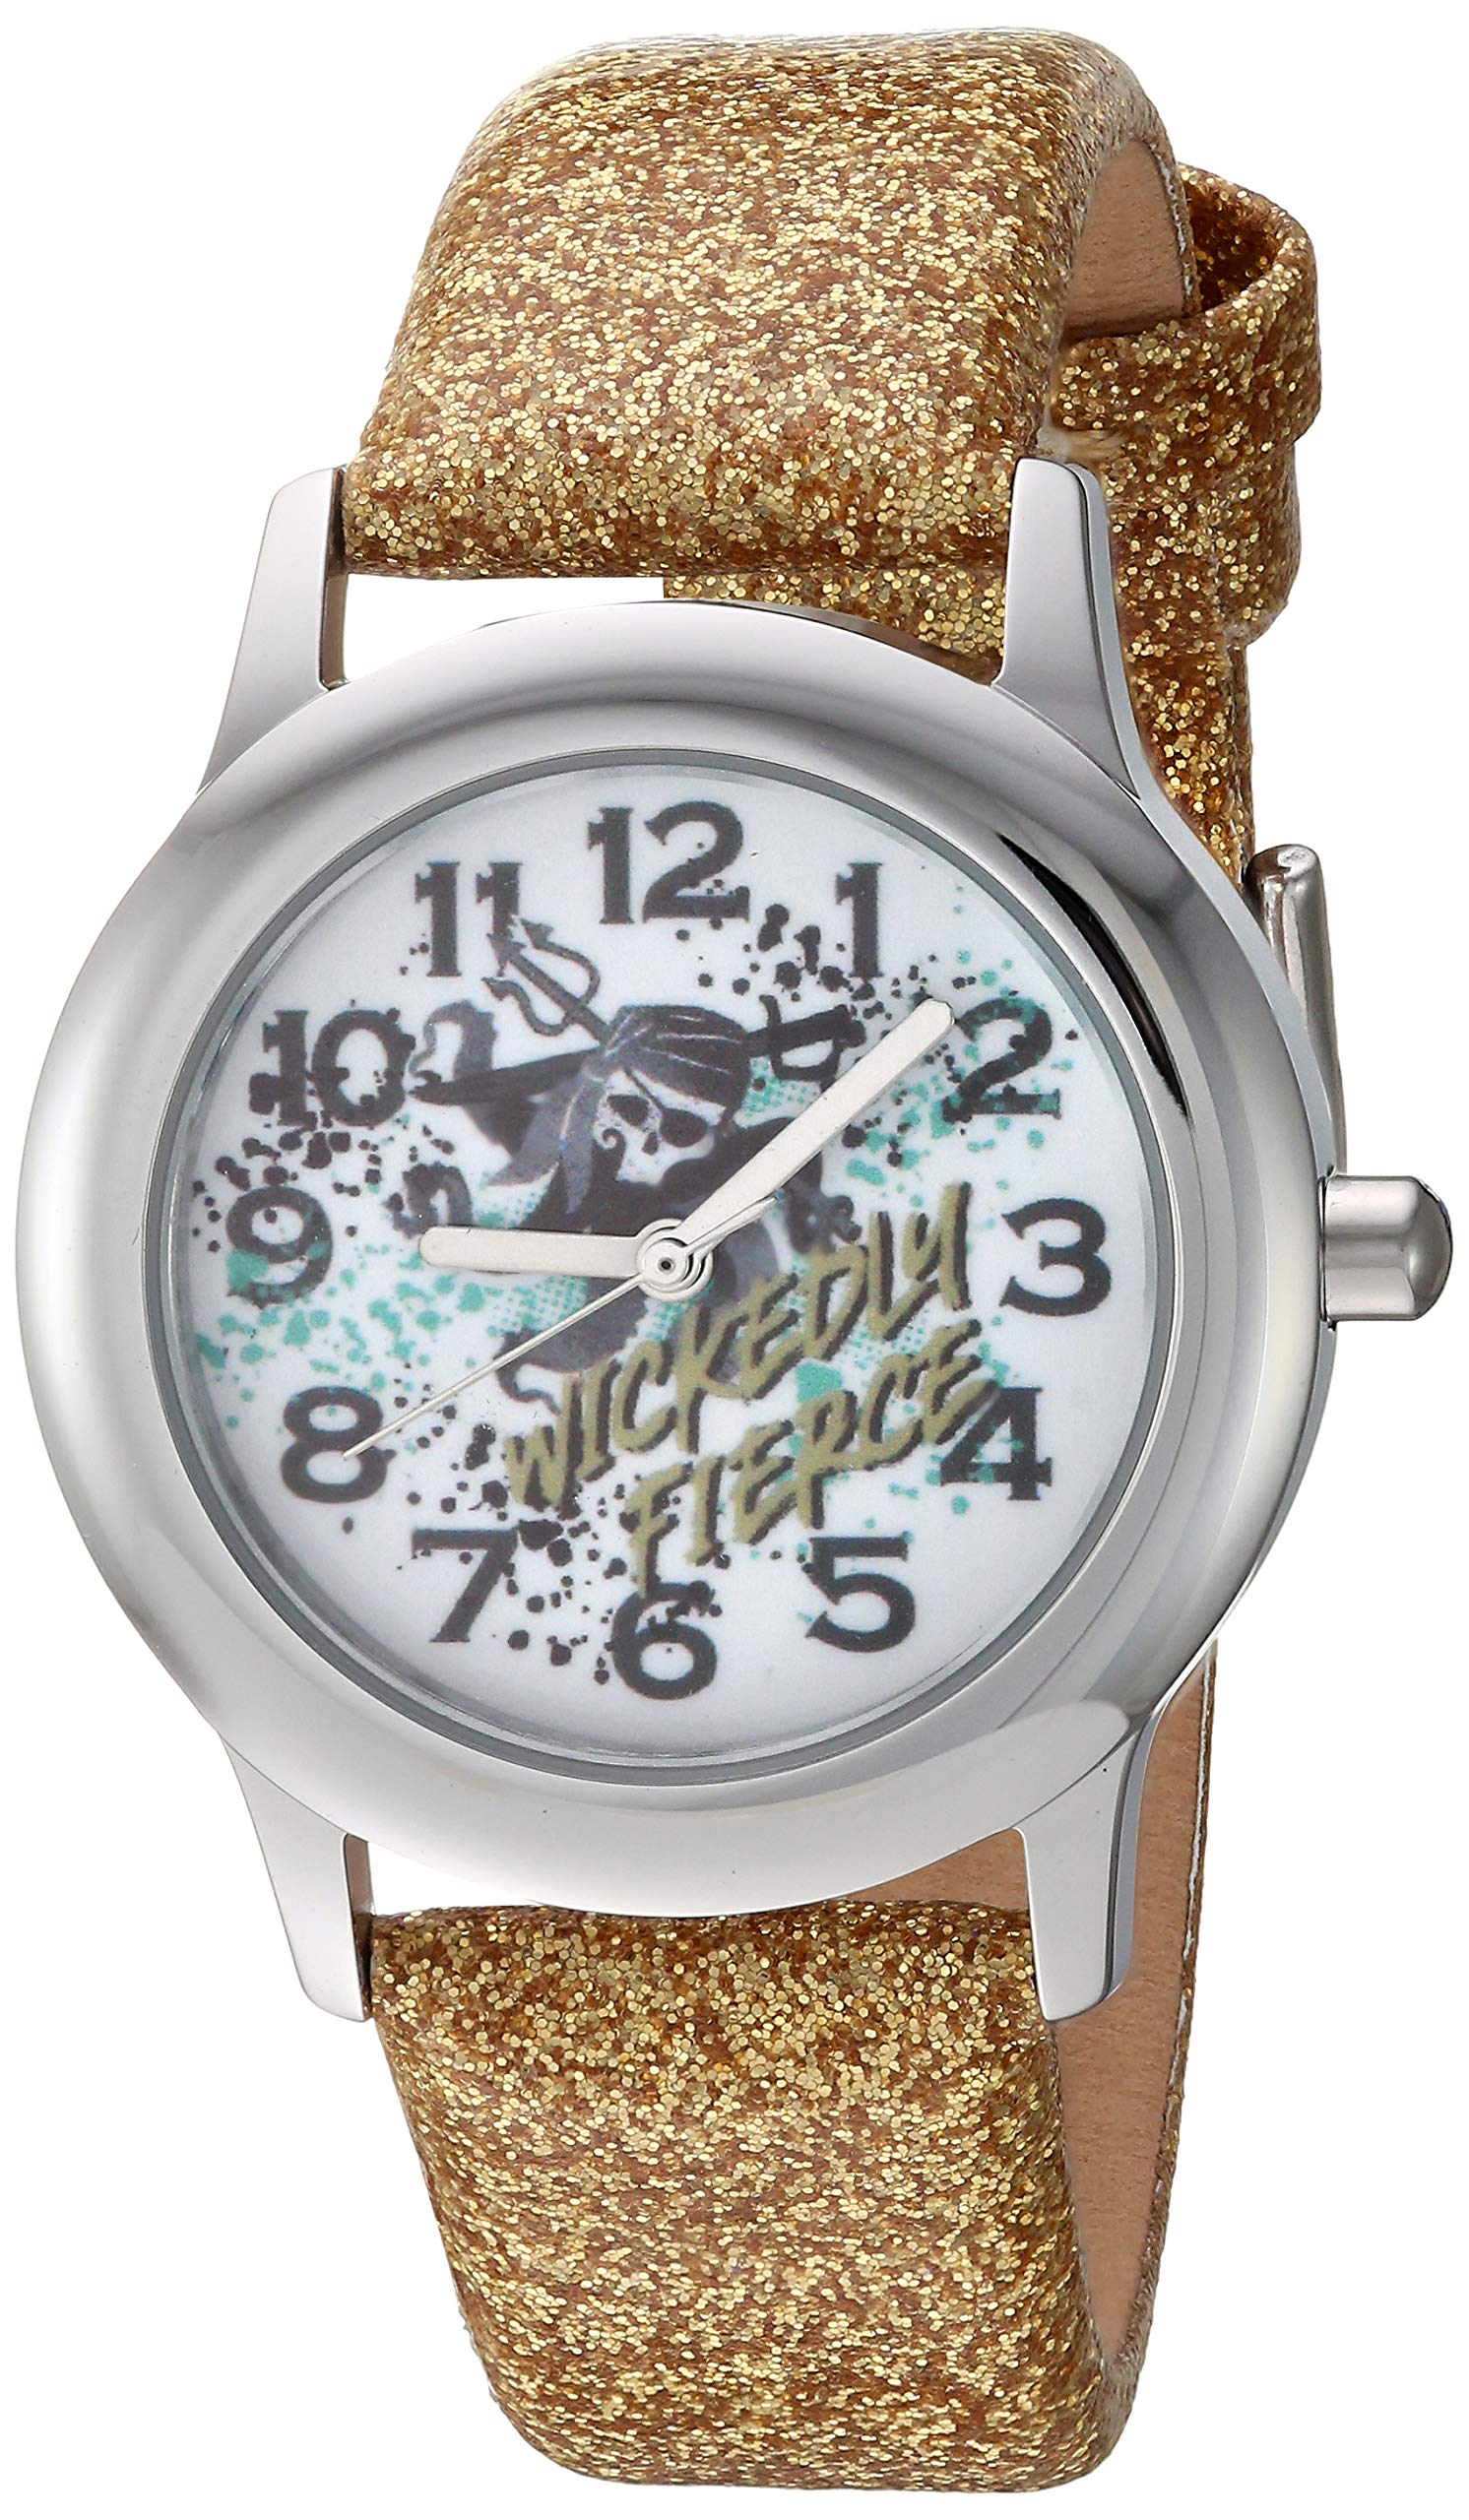 Disney Girls' Descendants 3 Stainless Steel Analog Quartz Watch with Patent Leather Strap, Yellow, 16 (Model: WDS000770) by Disney